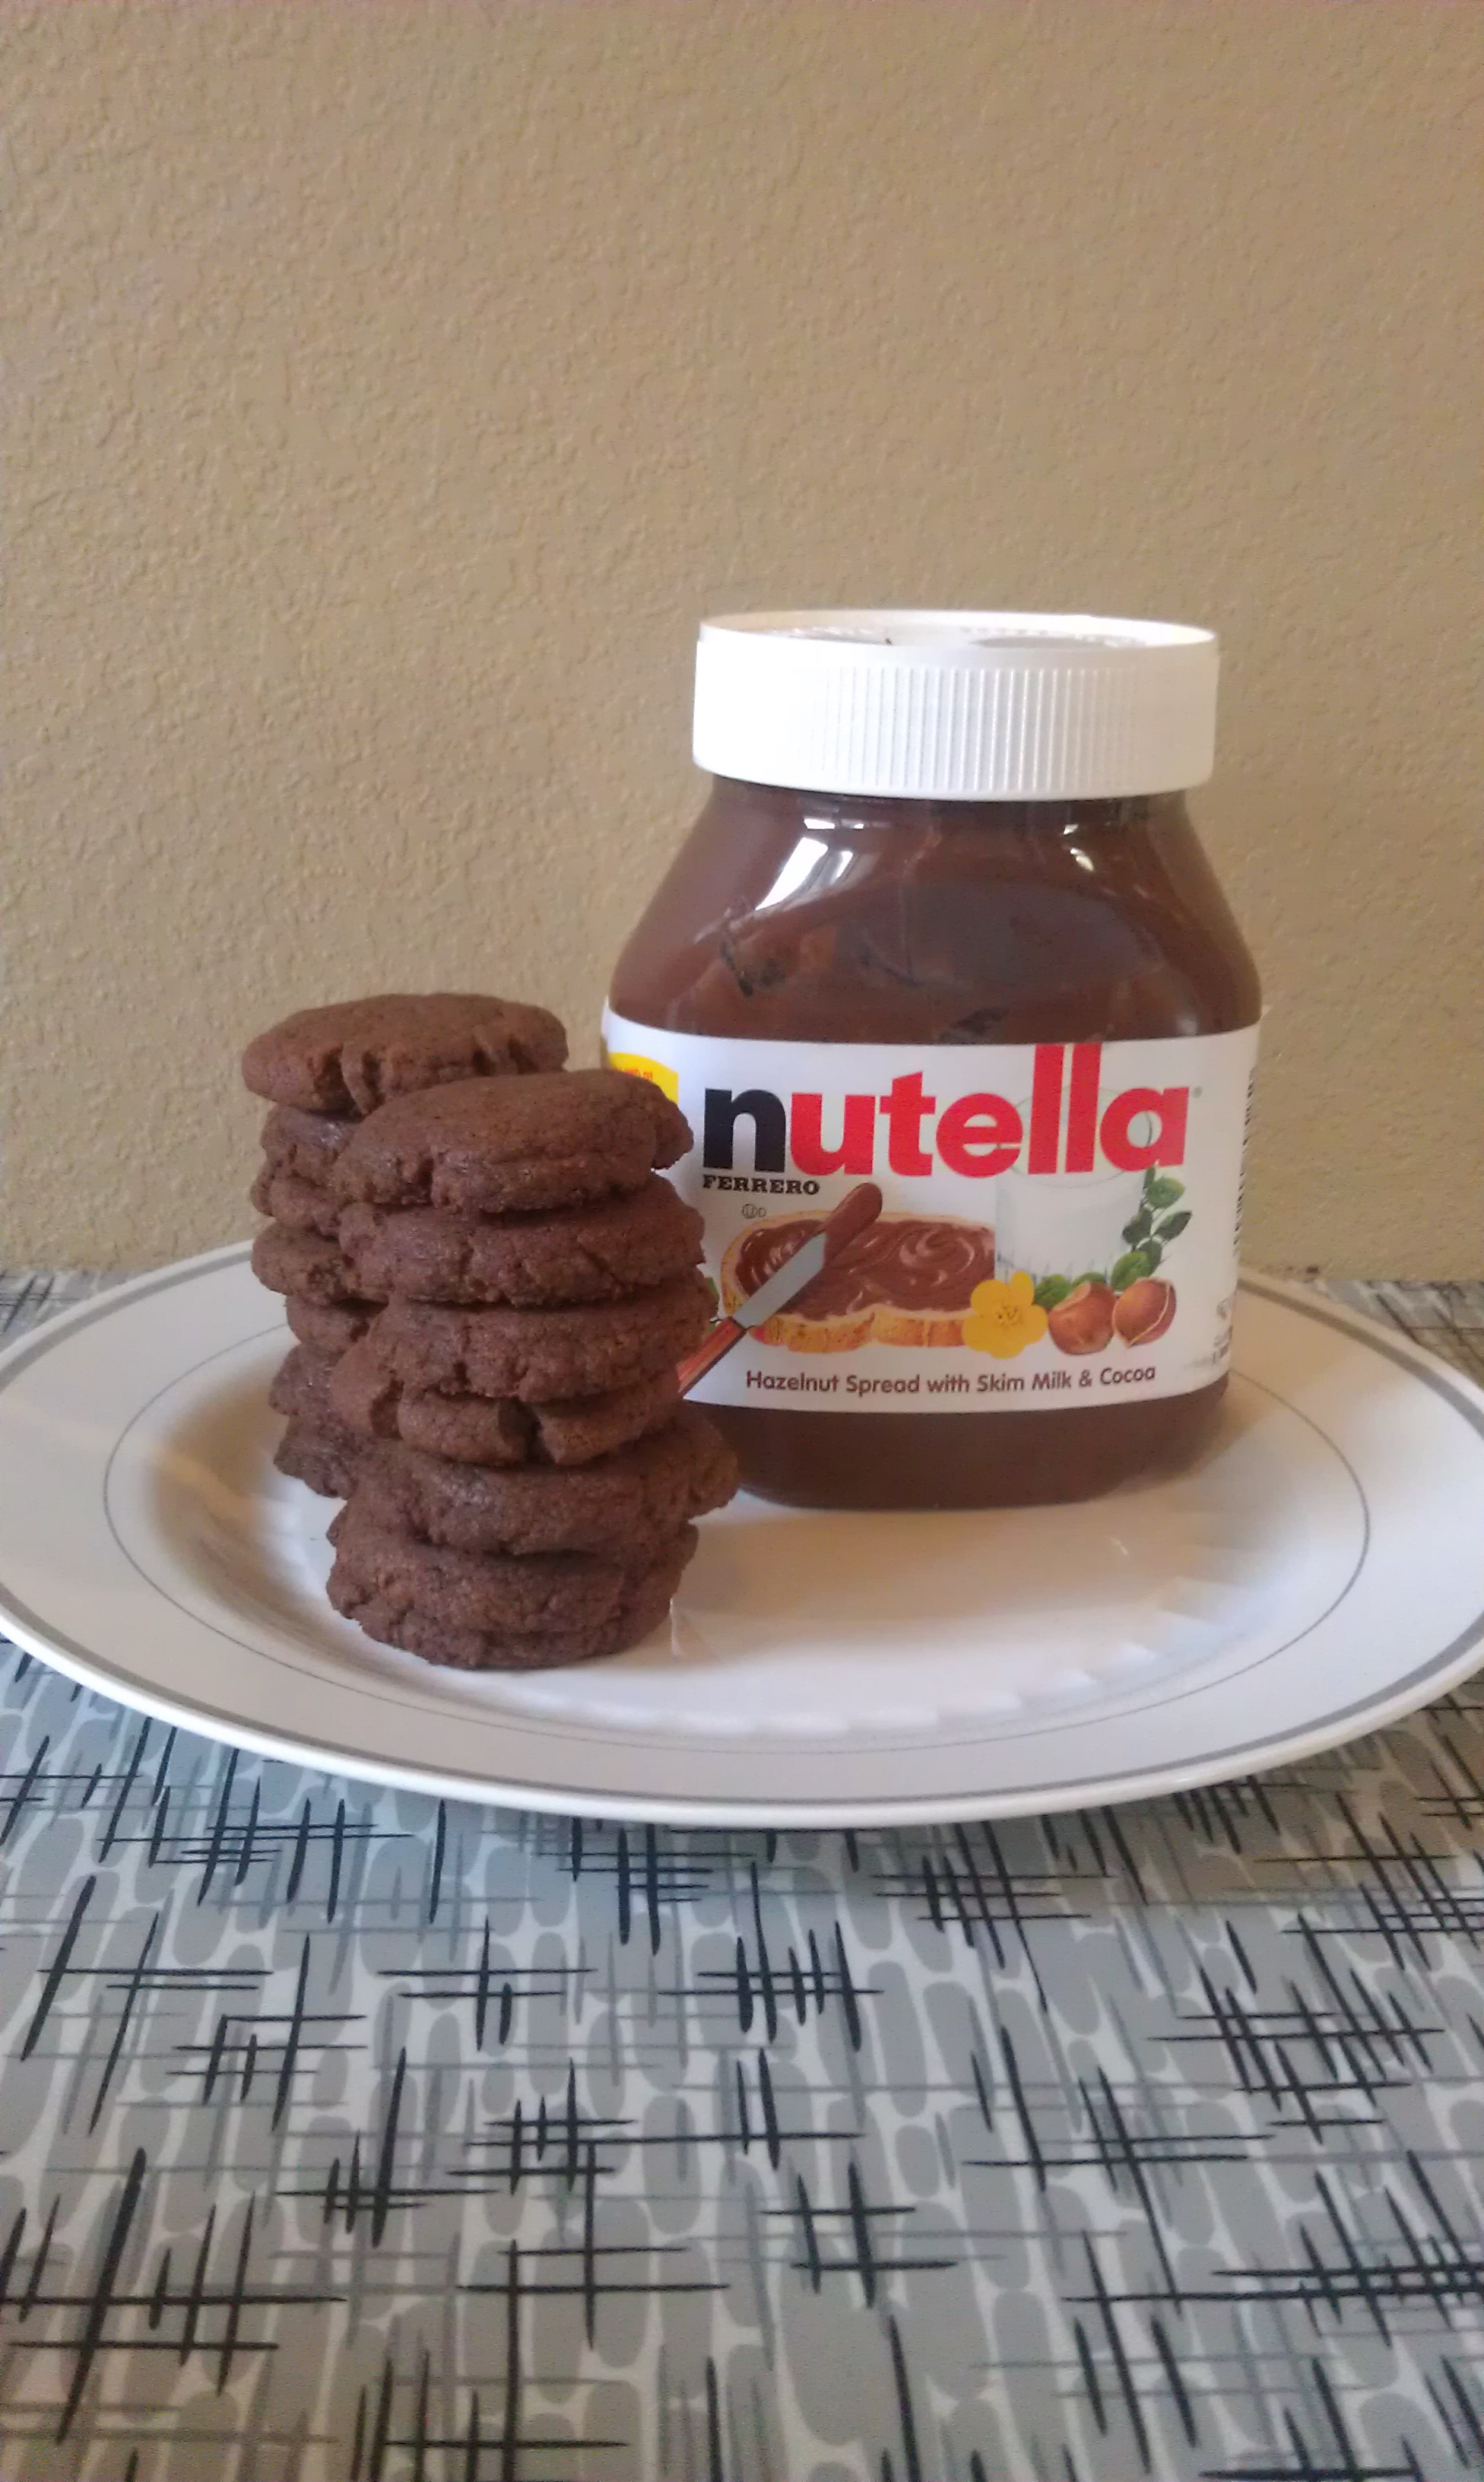 Nutella Cookie Recipe to Make with